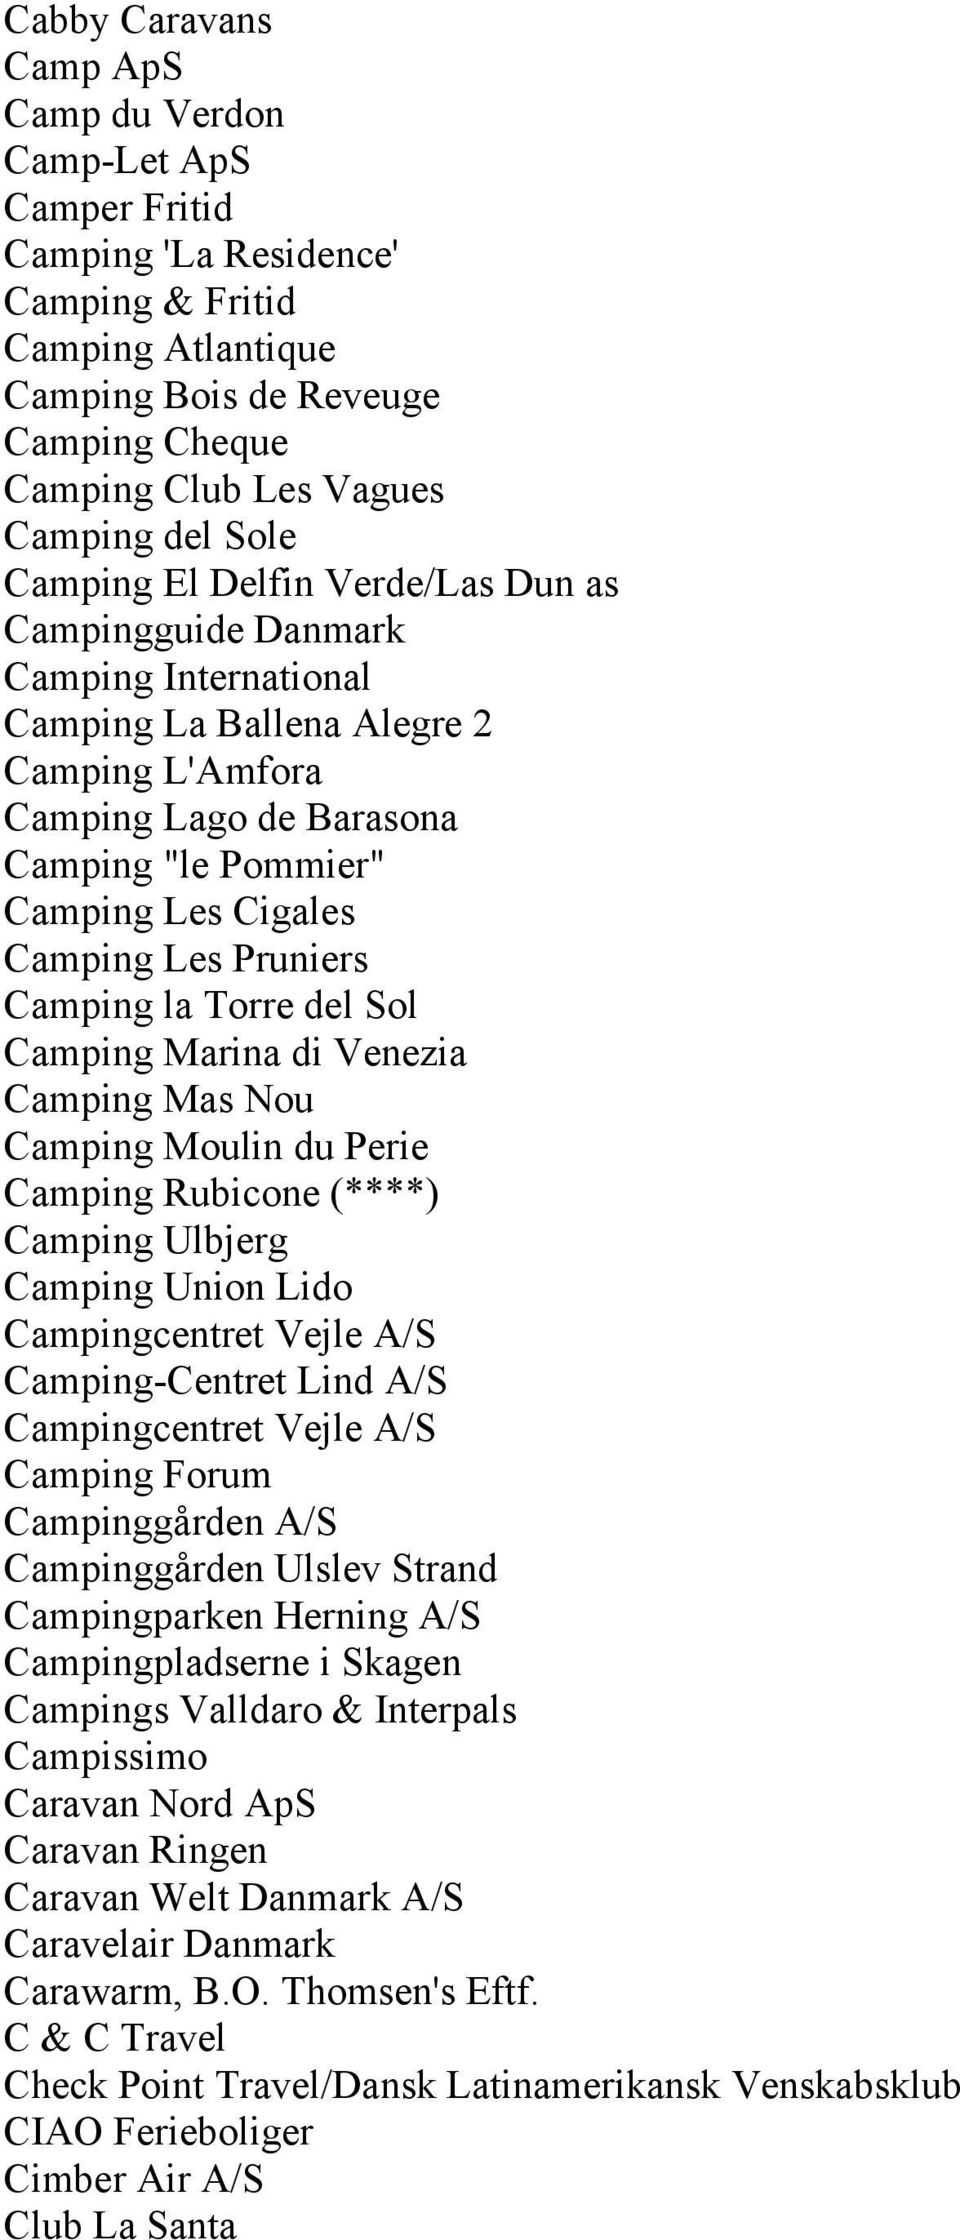 Camping Les Pruniers Camping la Torre del Sol Camping Marina di Venezia Camping Mas Nou Camping Moulin du Perie Camping Rubicone (****) Camping Ulbjerg Camping Union Lido Campingcentret Vejle A/S